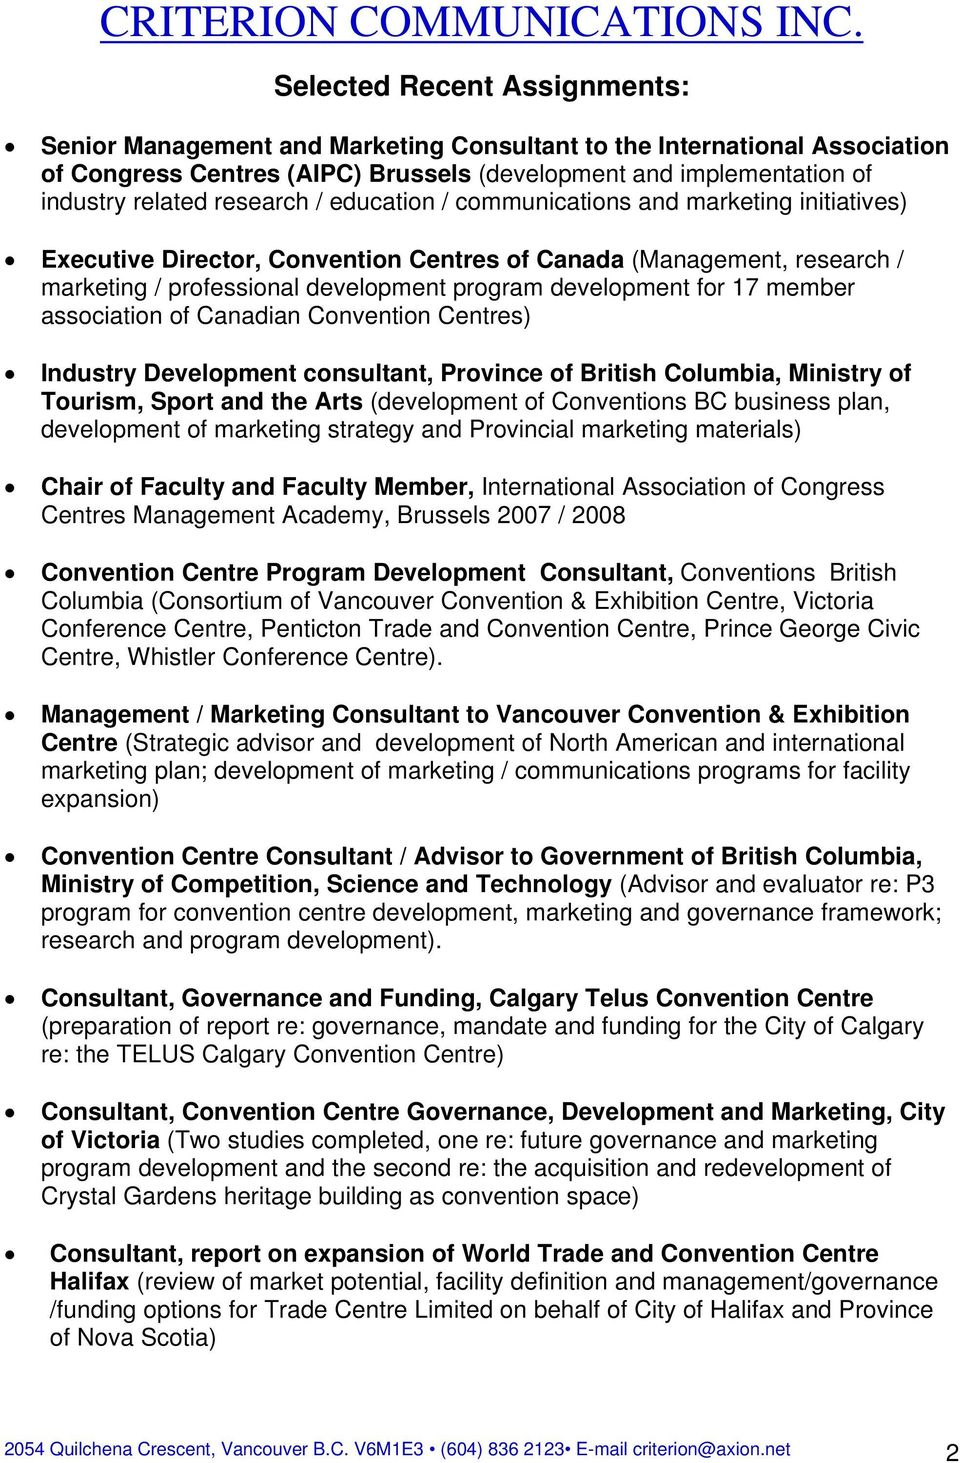 17 member association of Canadian Convention Centres) Industry Development consultant, Province of British Columbia, Ministry of Tourism, Sport and the Arts (development of Conventions BC business